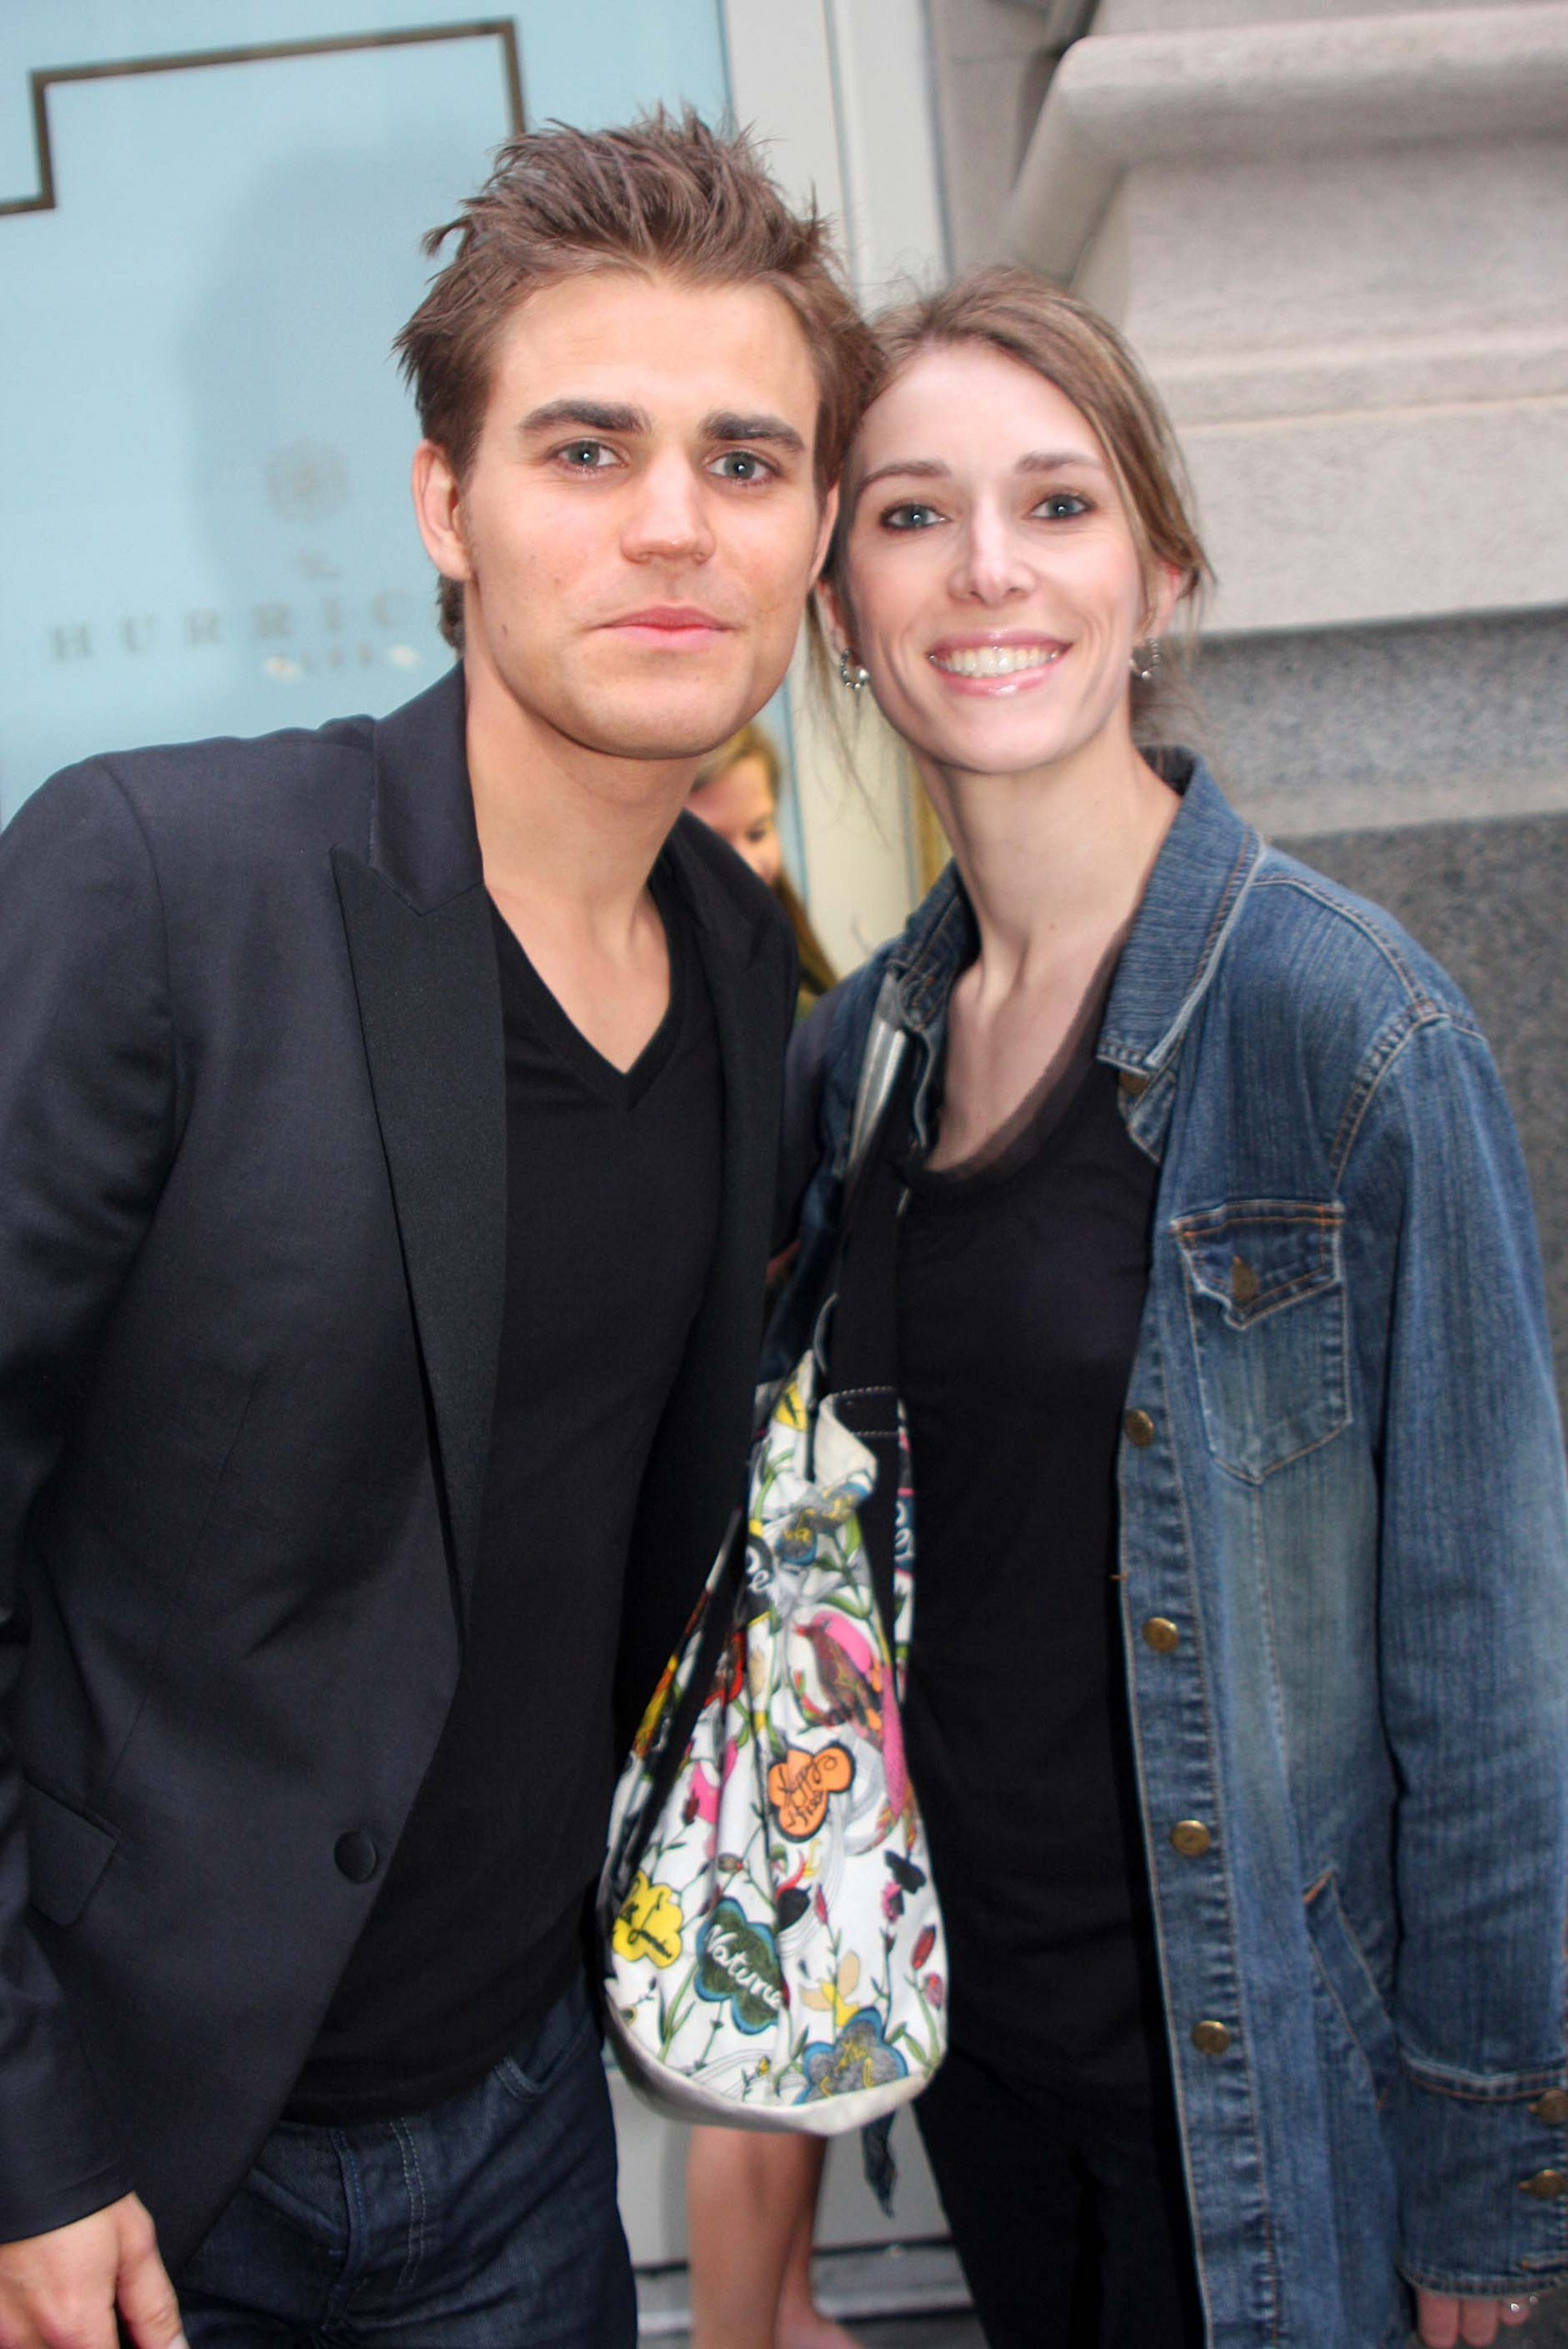 Paul and his sister Monika: CW Upfront - After Party (2011 ...